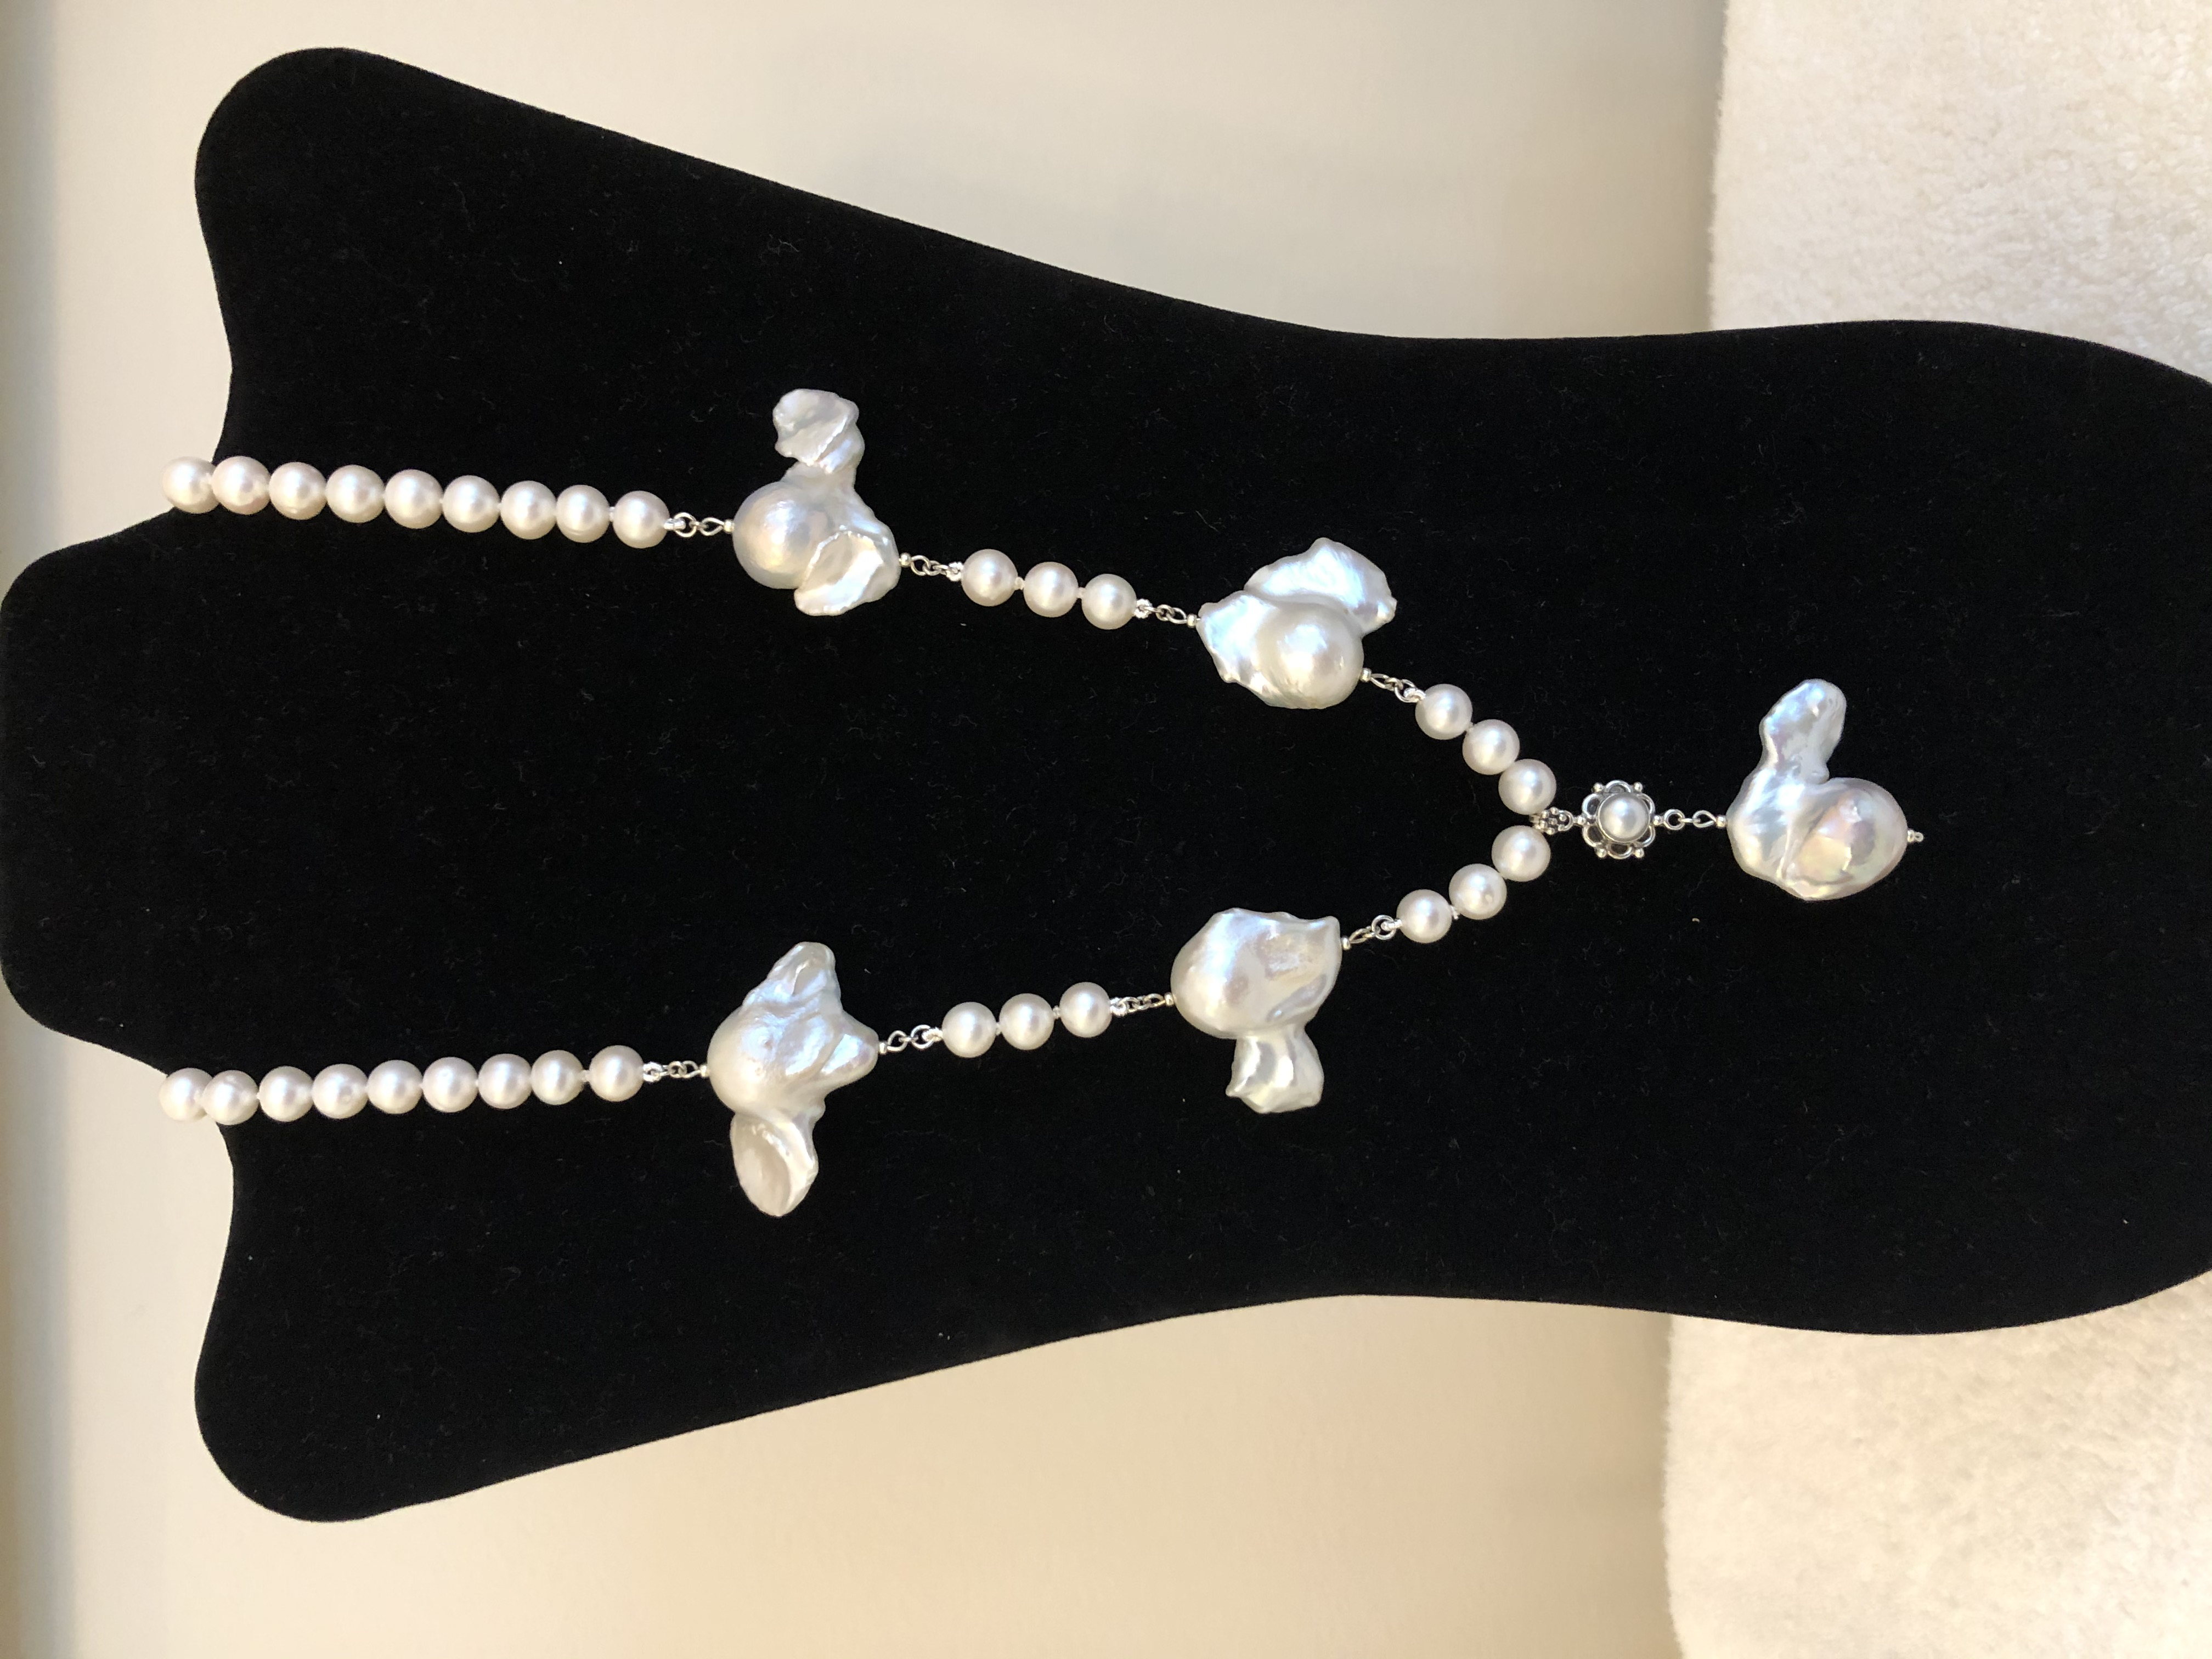 Sterling Silver Necklace, w/Freshwater Cultured Baroque & 8.5mm Pearls